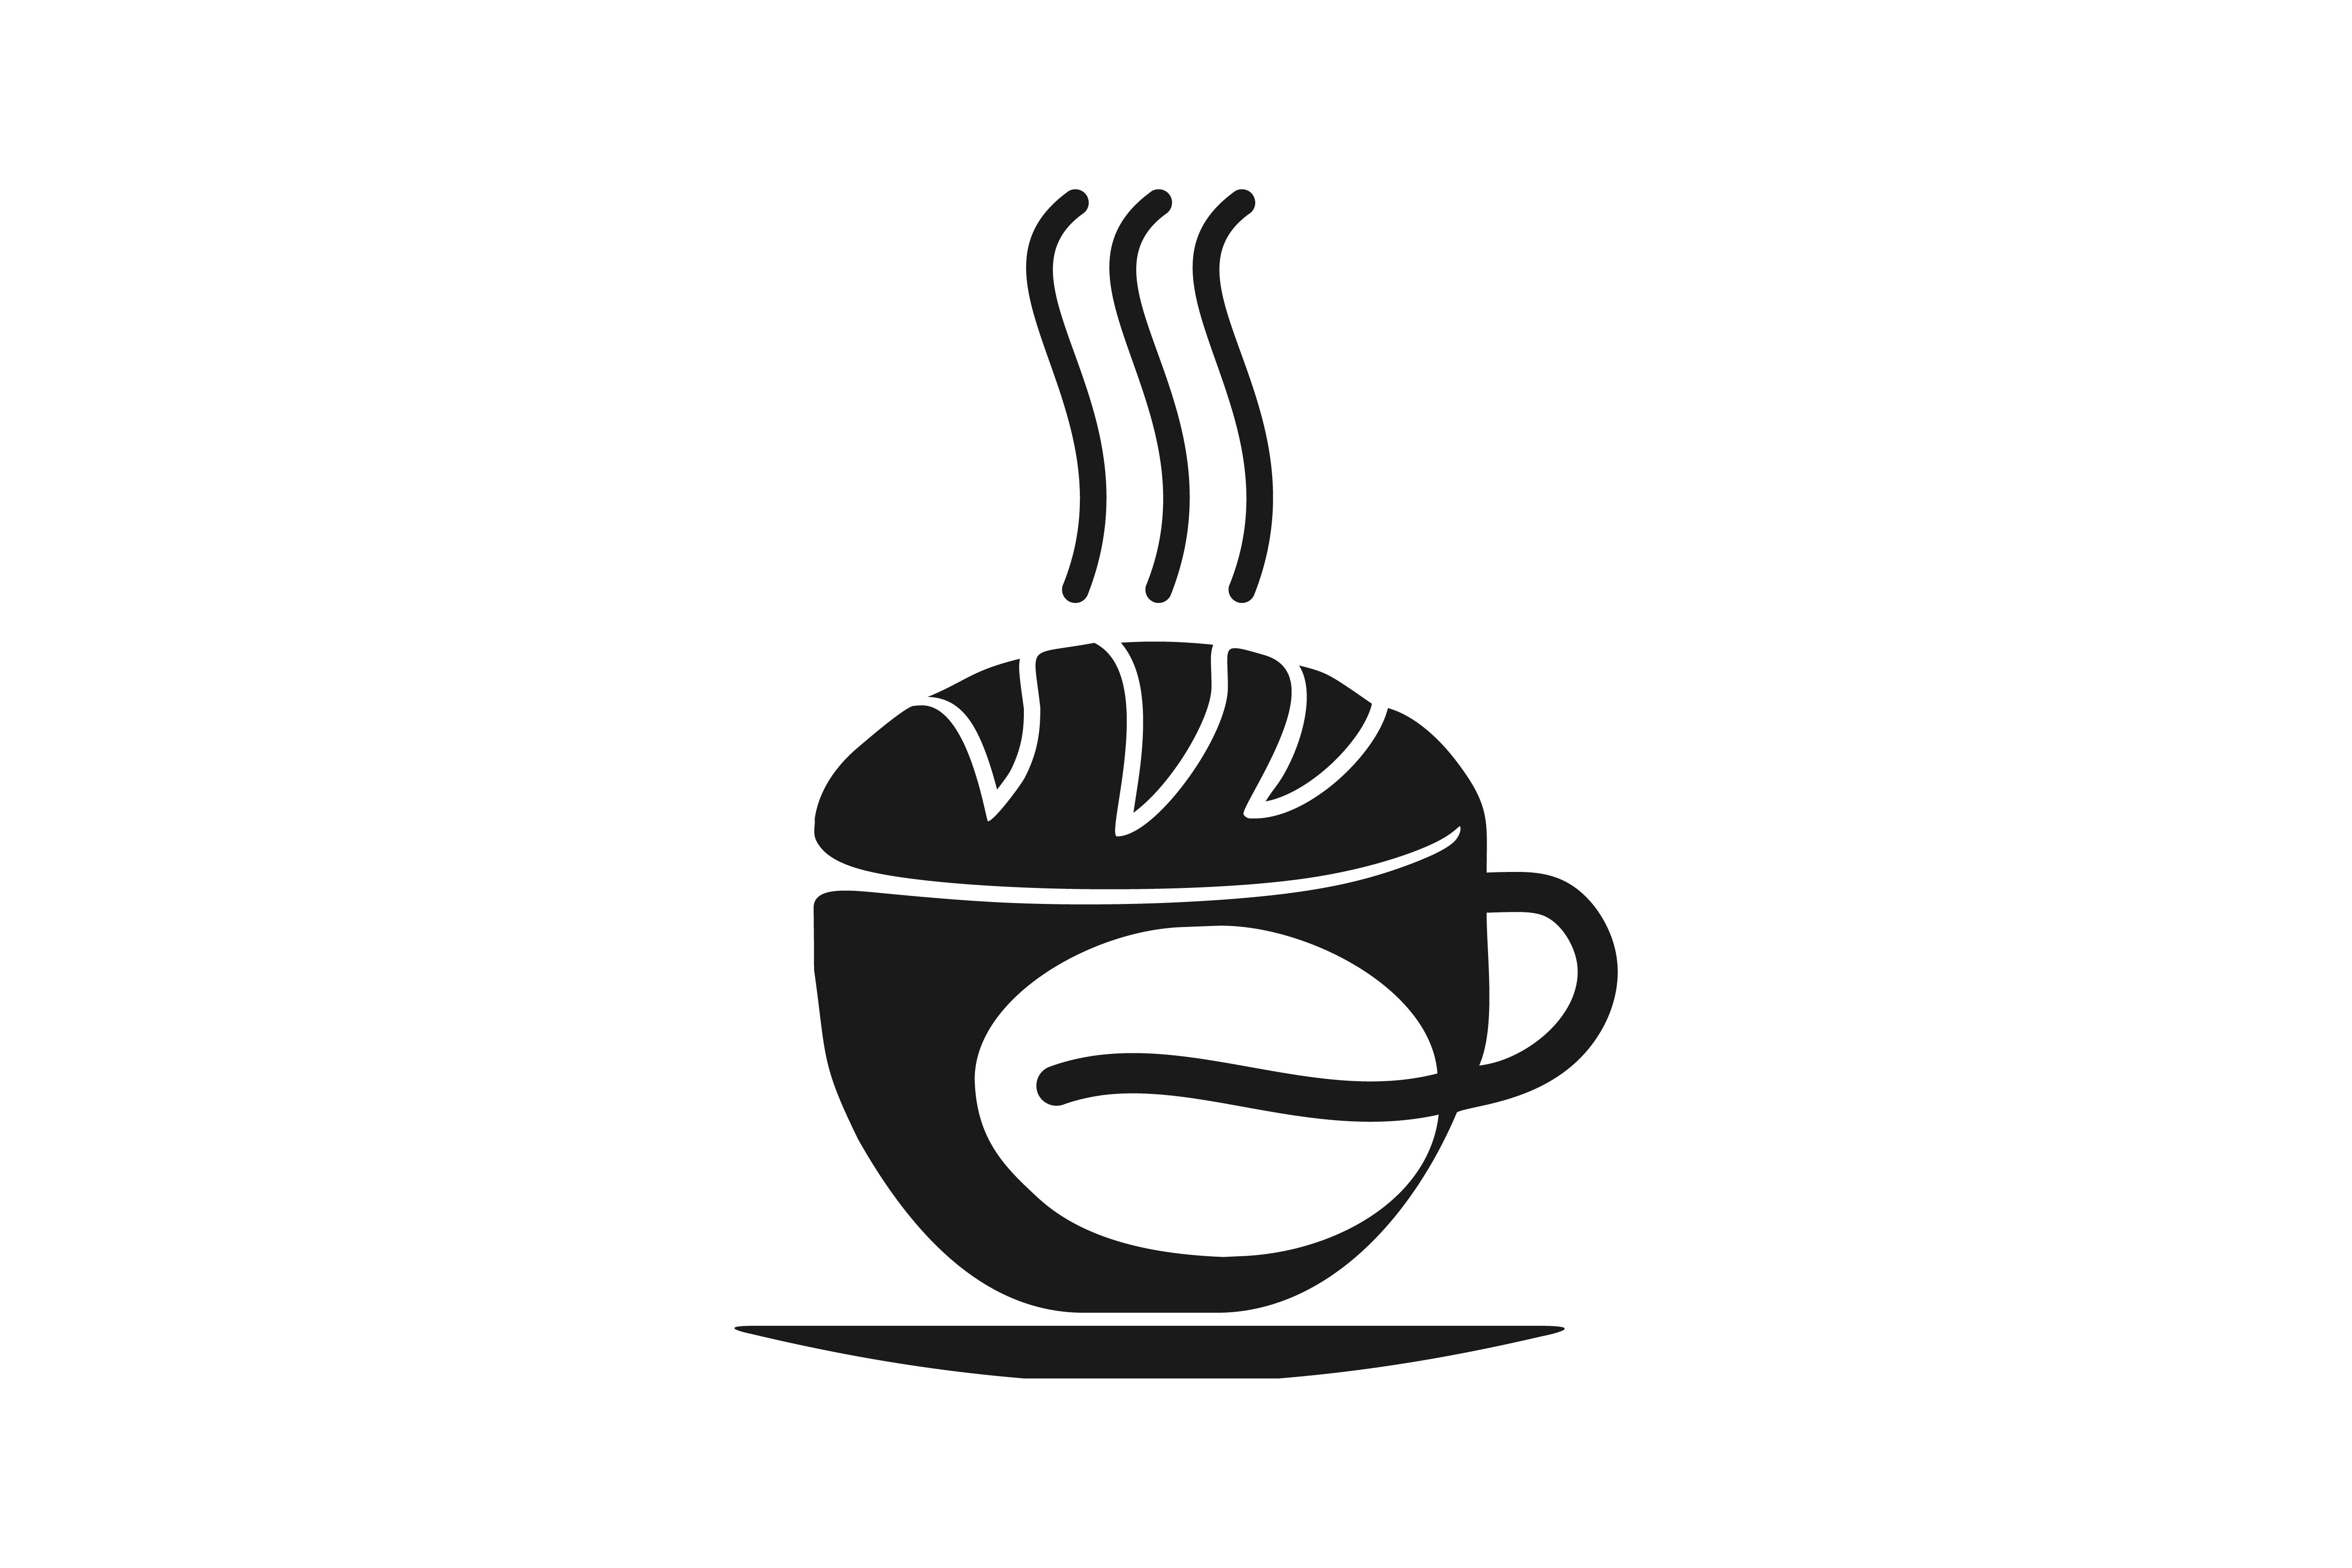 Download Free Coffee Cup Bakery And Coffee Bean Logo Graphic By for Cricut Explore, Silhouette and other cutting machines.